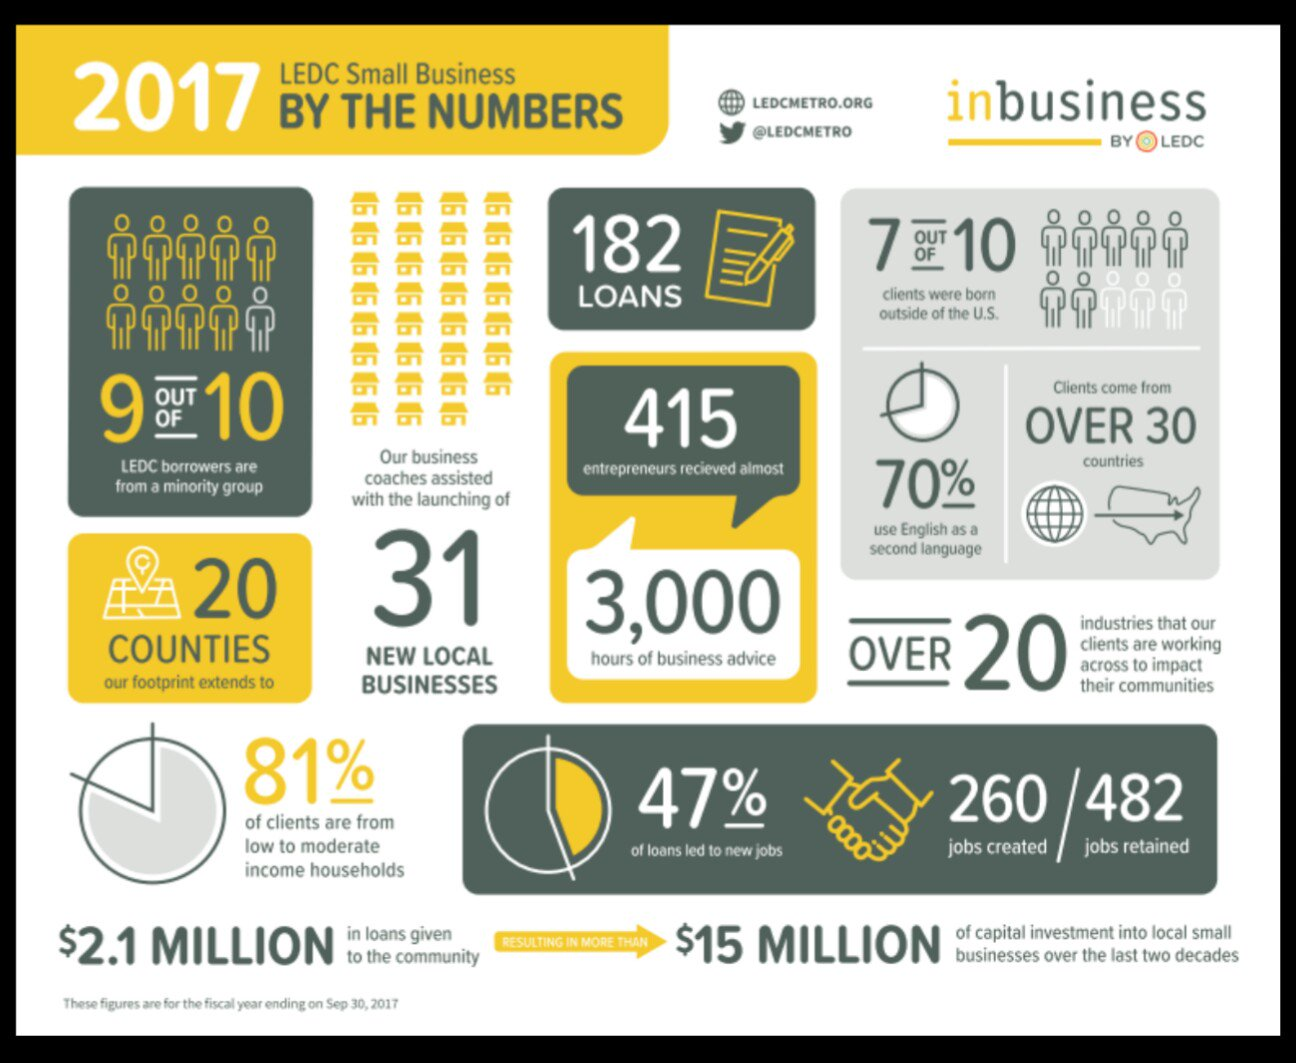 2017 LEDC Small Business By The Numbers